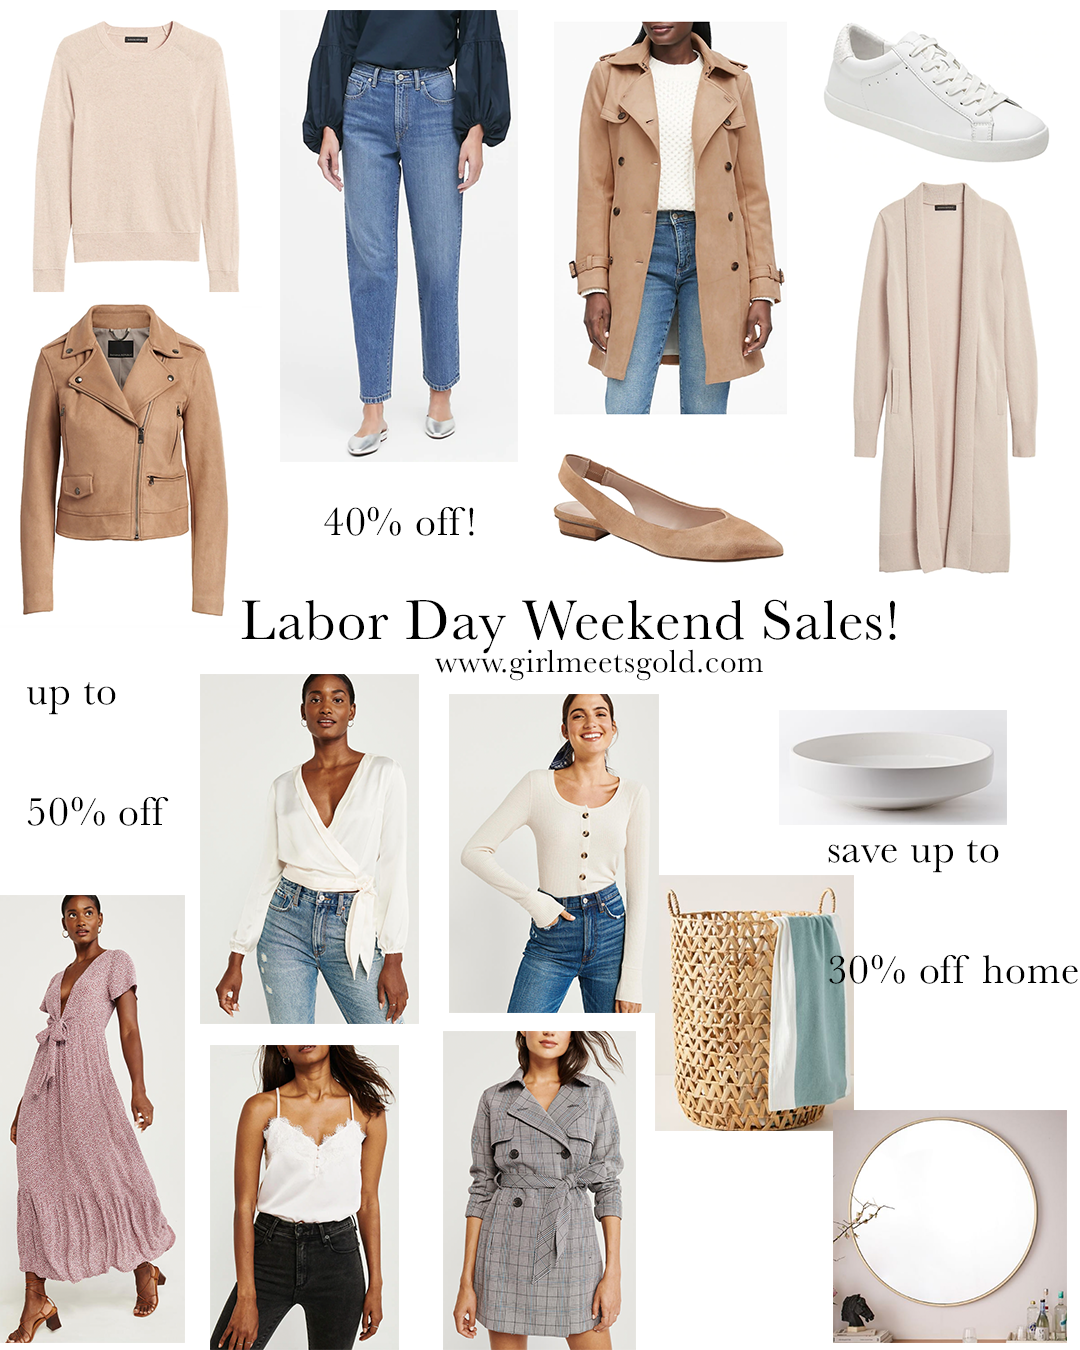 2019 Labor Day Weekend Sales! | www.girlmeetsgold.com